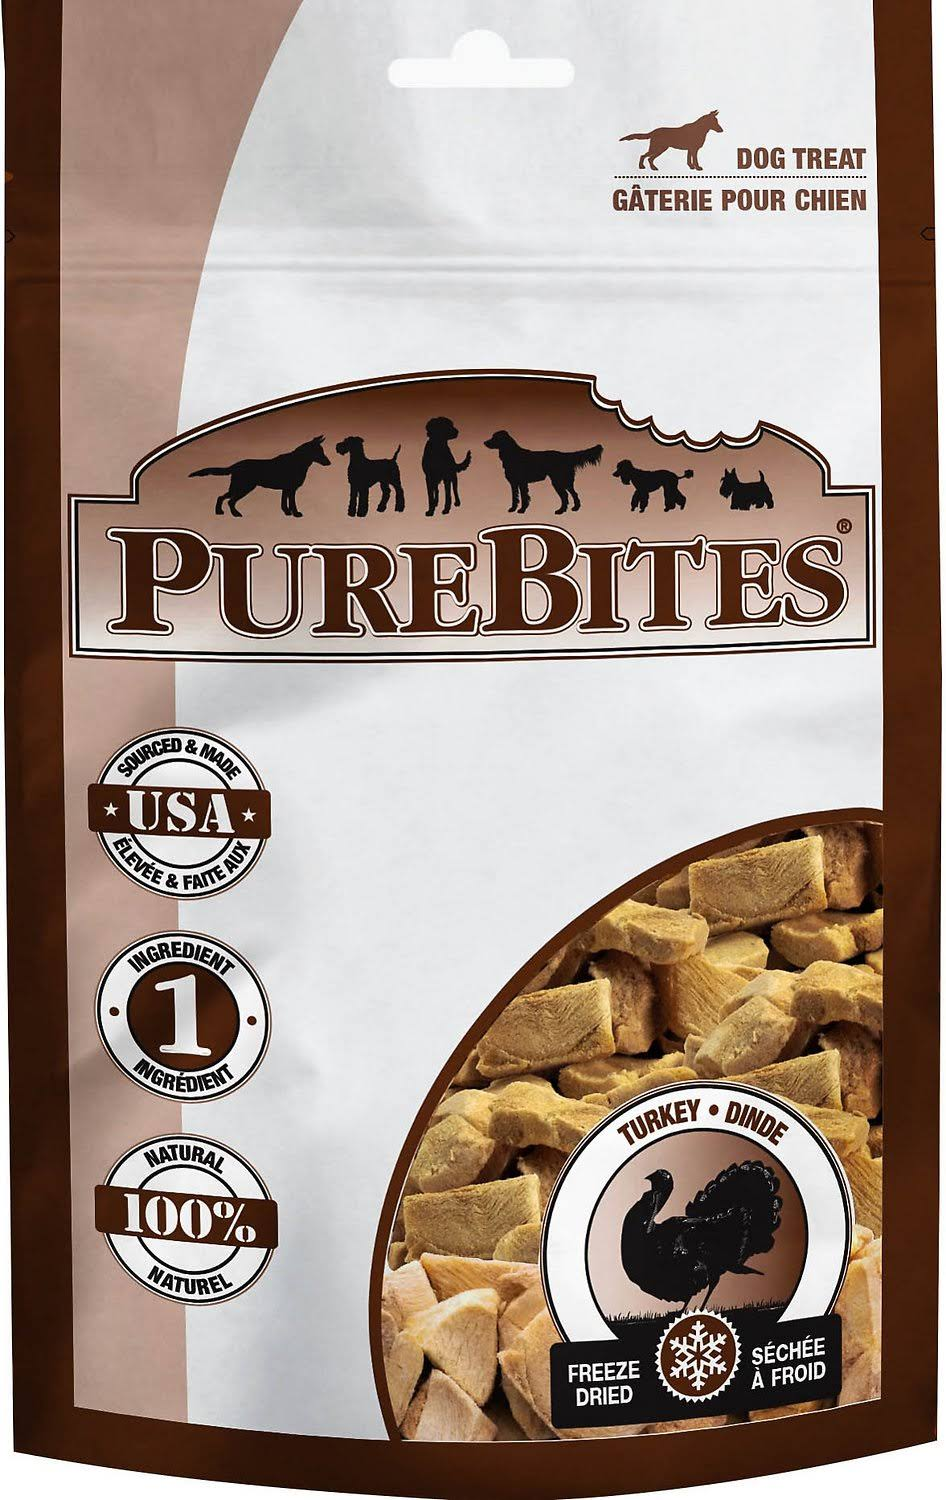 PureBites Freeze Dried Turkey Breast Dog Treat - 2.47oz